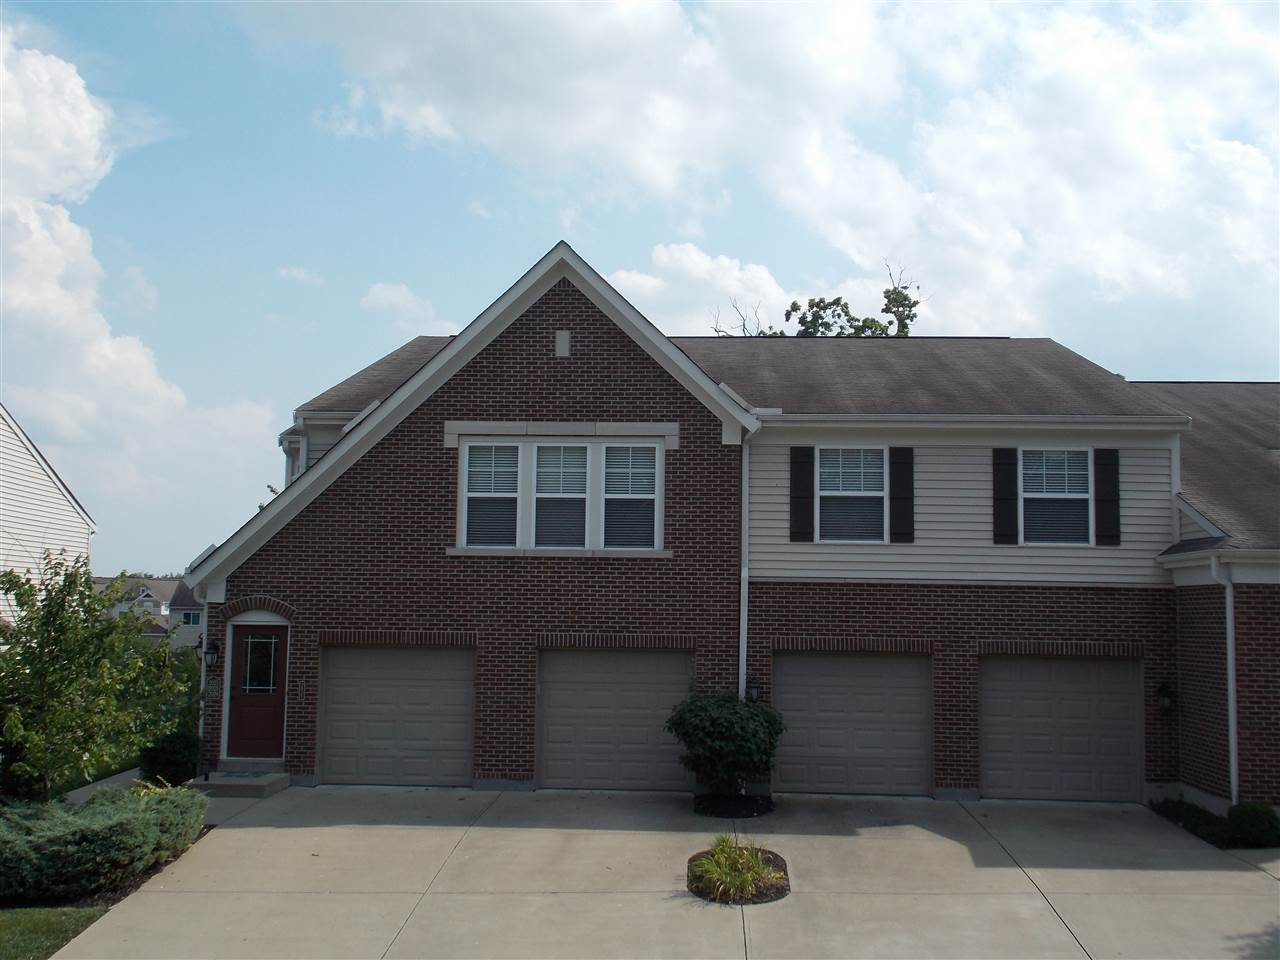 Photo 1 for 2037 Timberwyck Ln Burlington, KY 41005